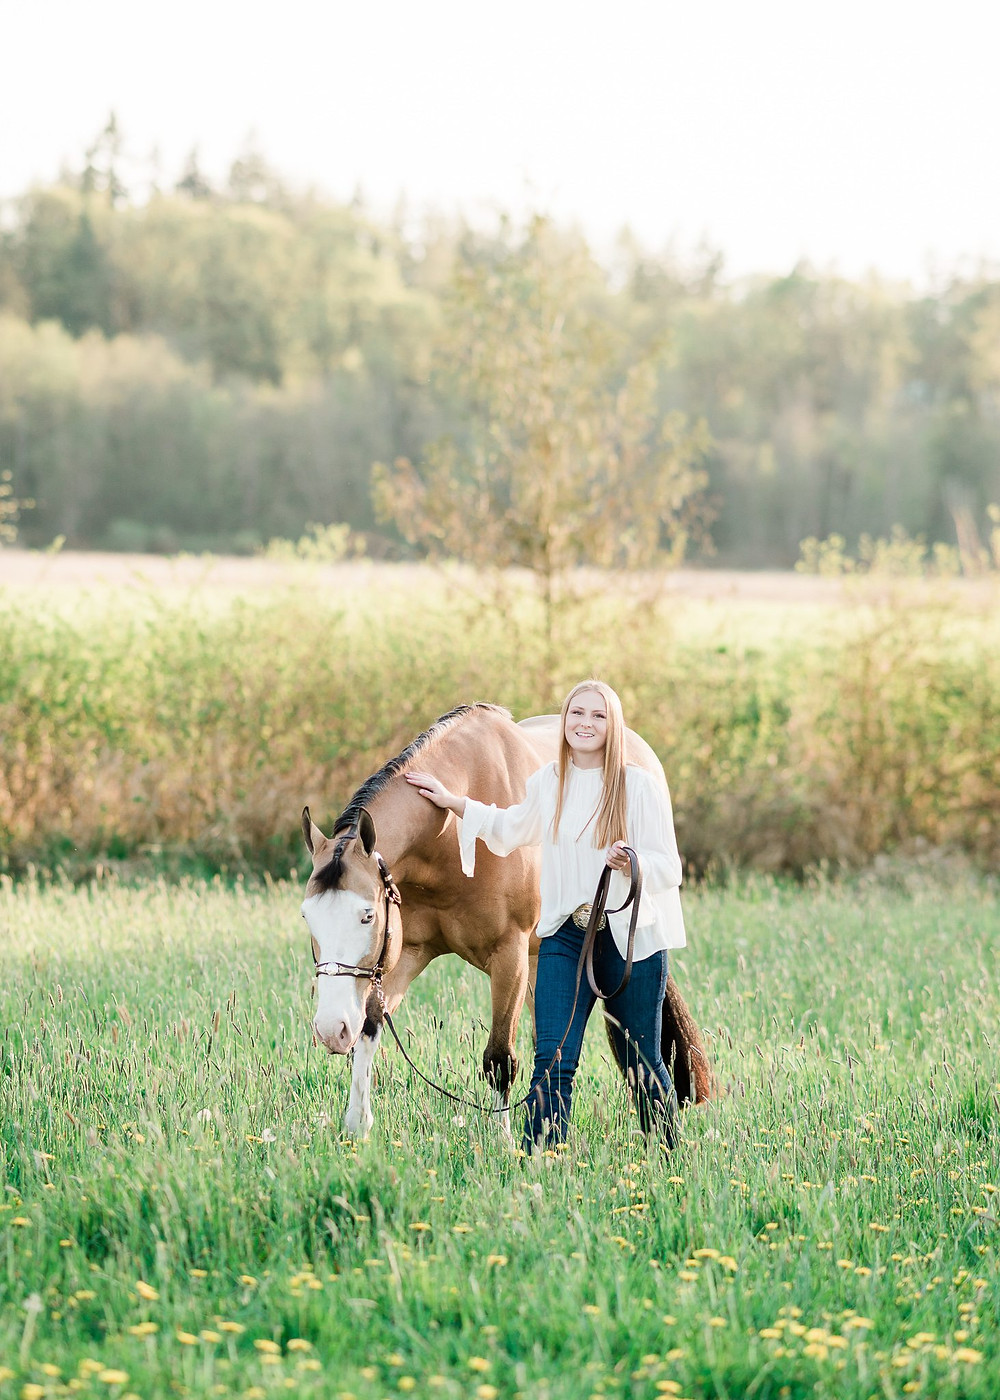 Ansley walking with Shiloh, her APHA gelding, in a grassy spot at Lucky 13 Ranch in Arlington, WA